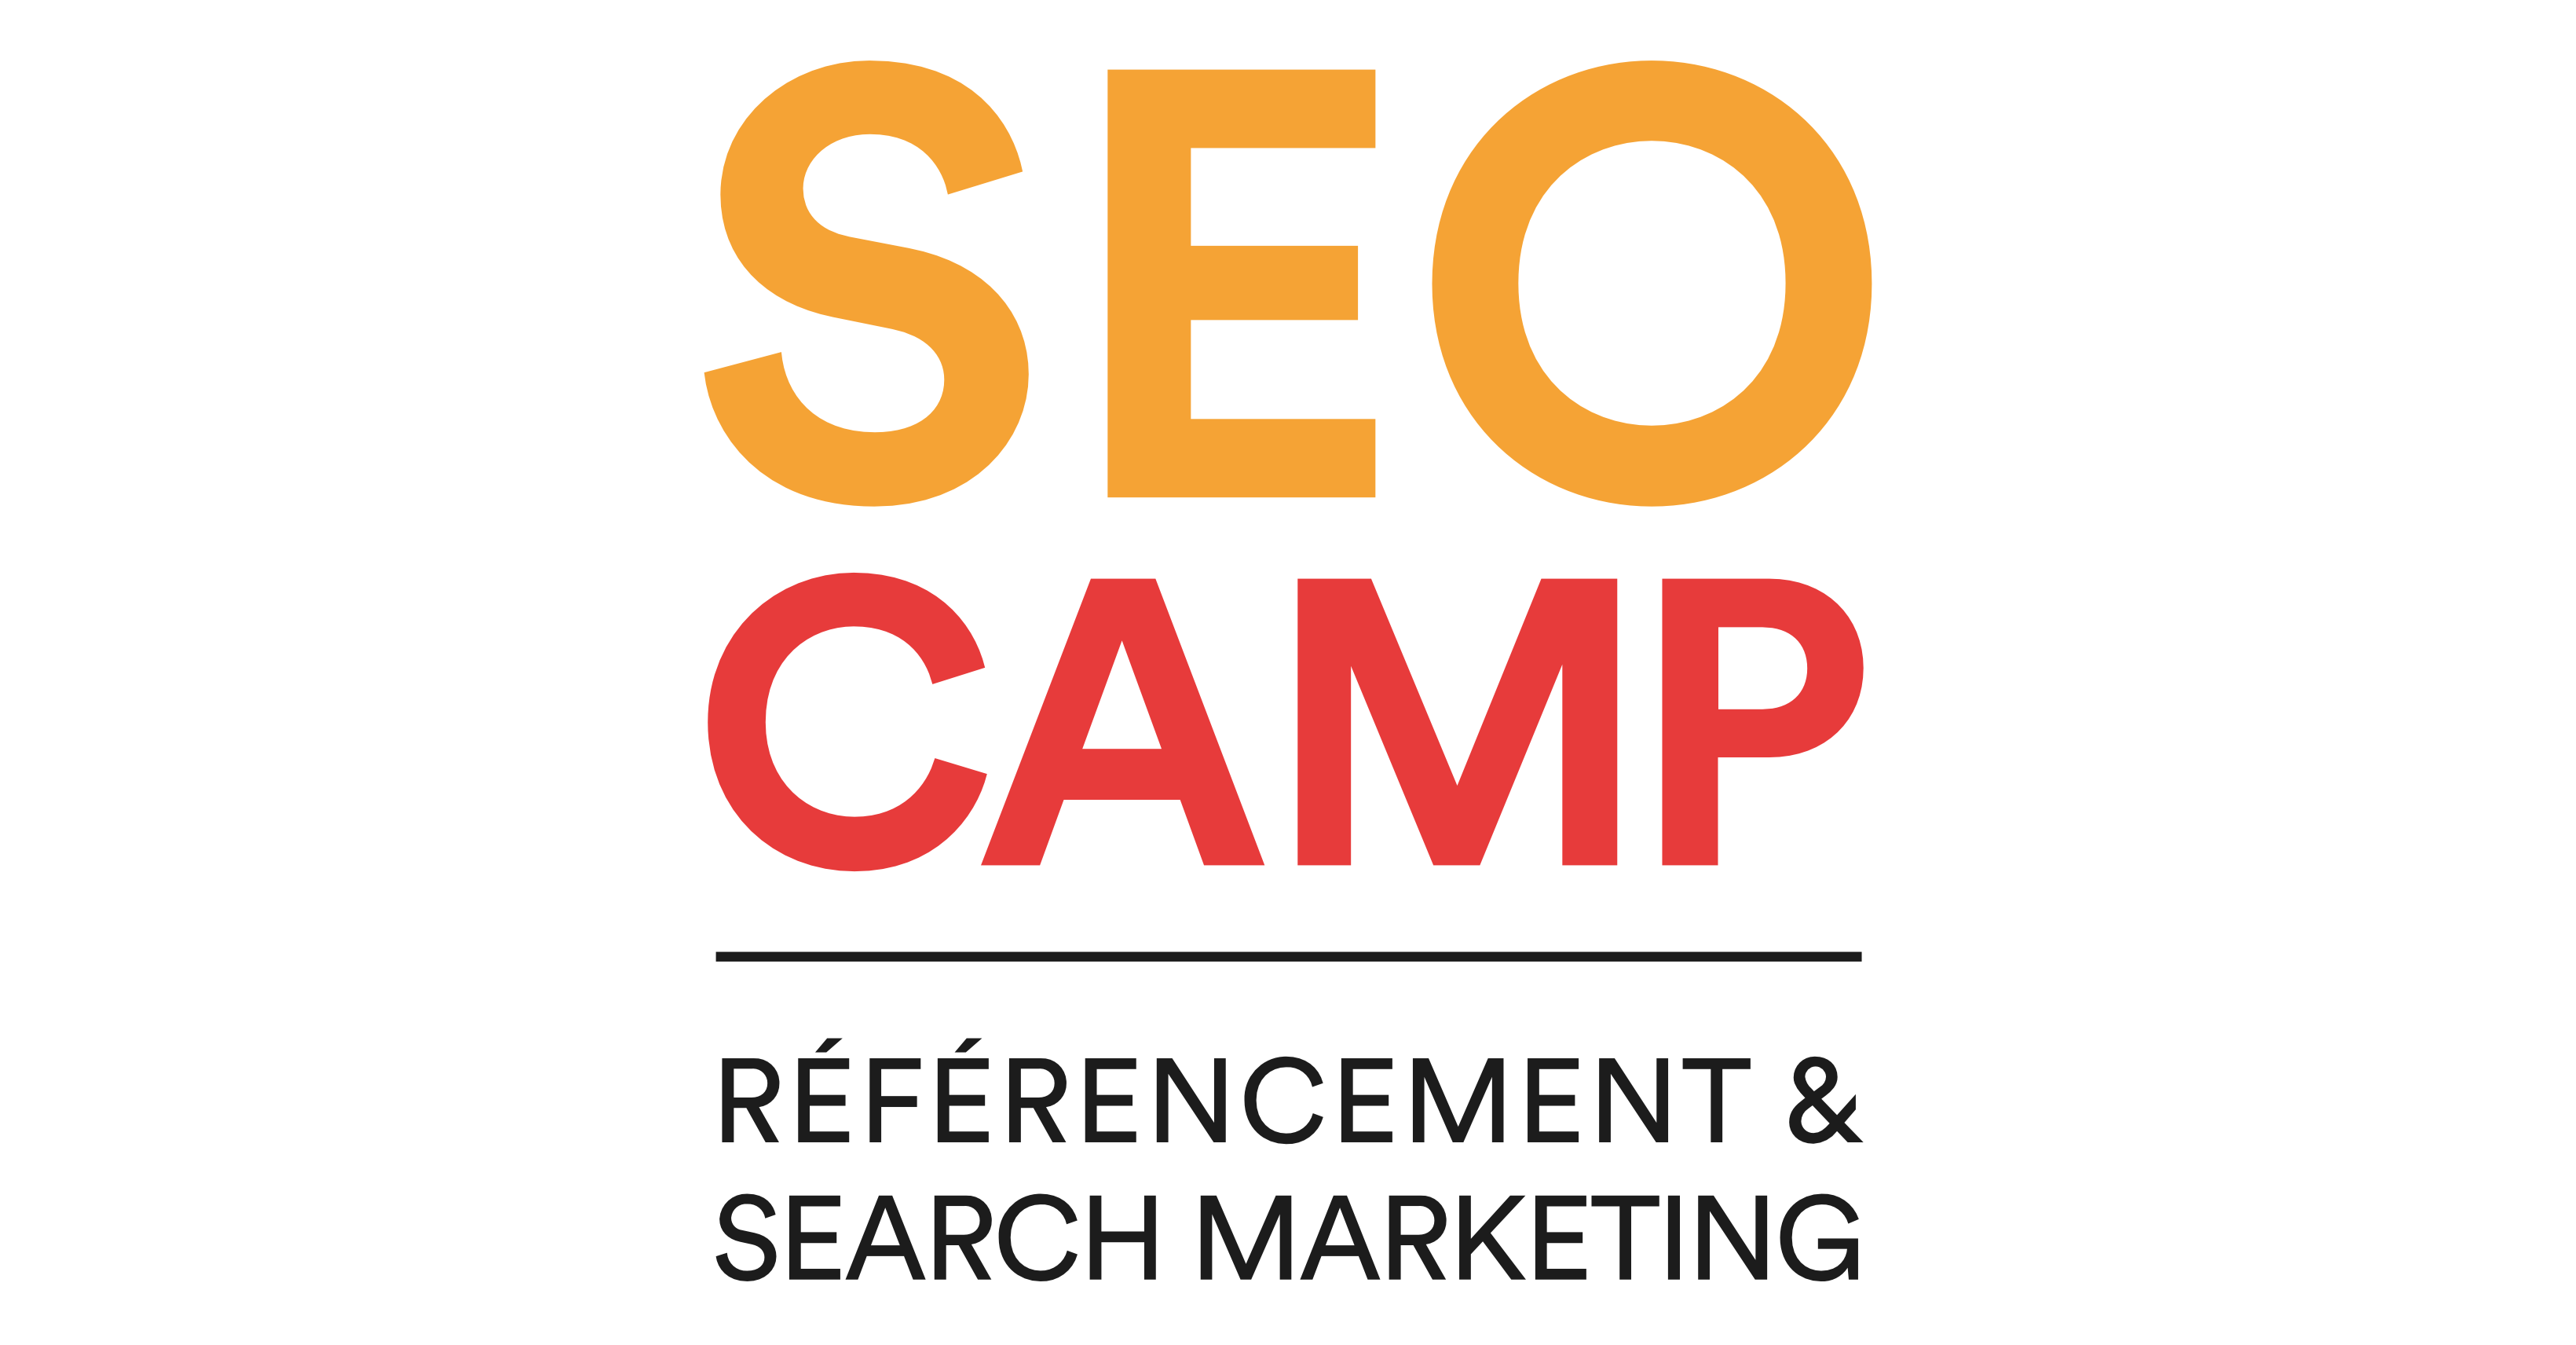 seo camp association referencement